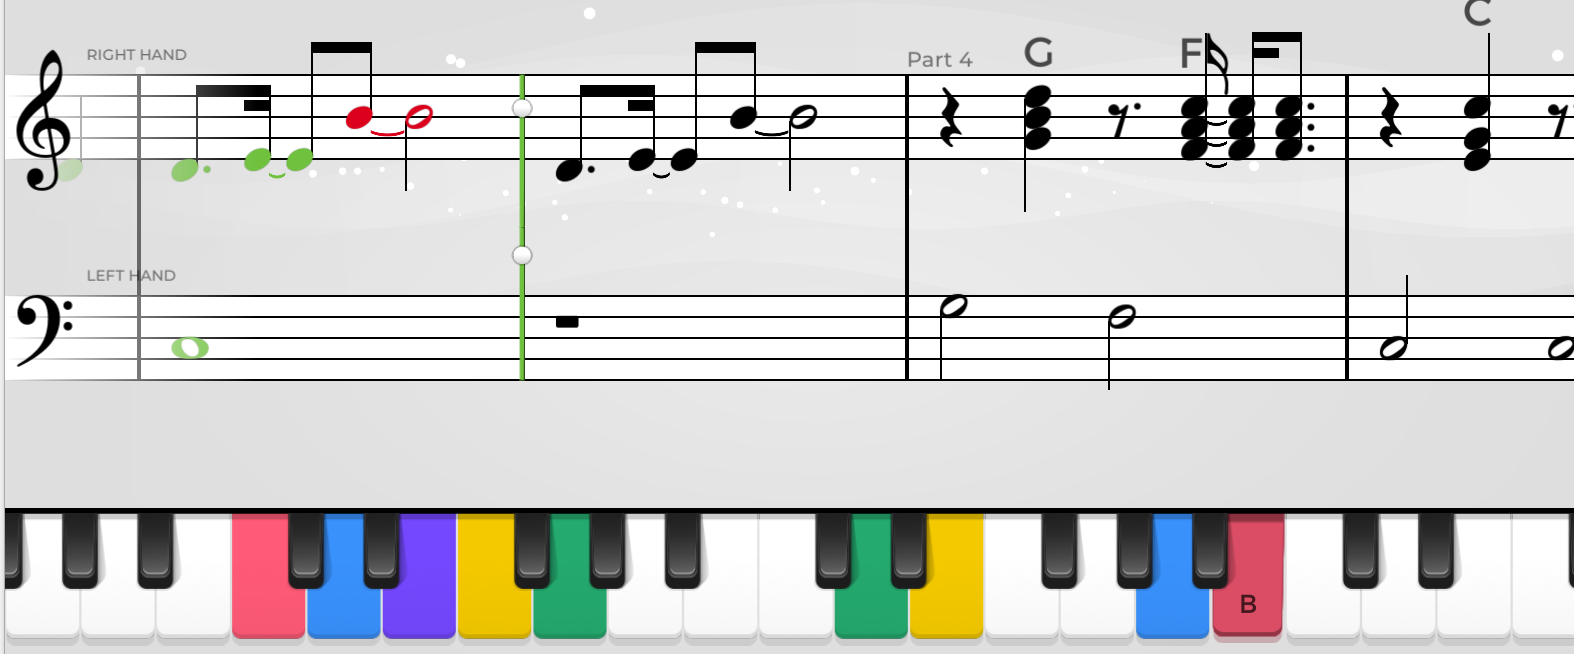 piano_practice5.png